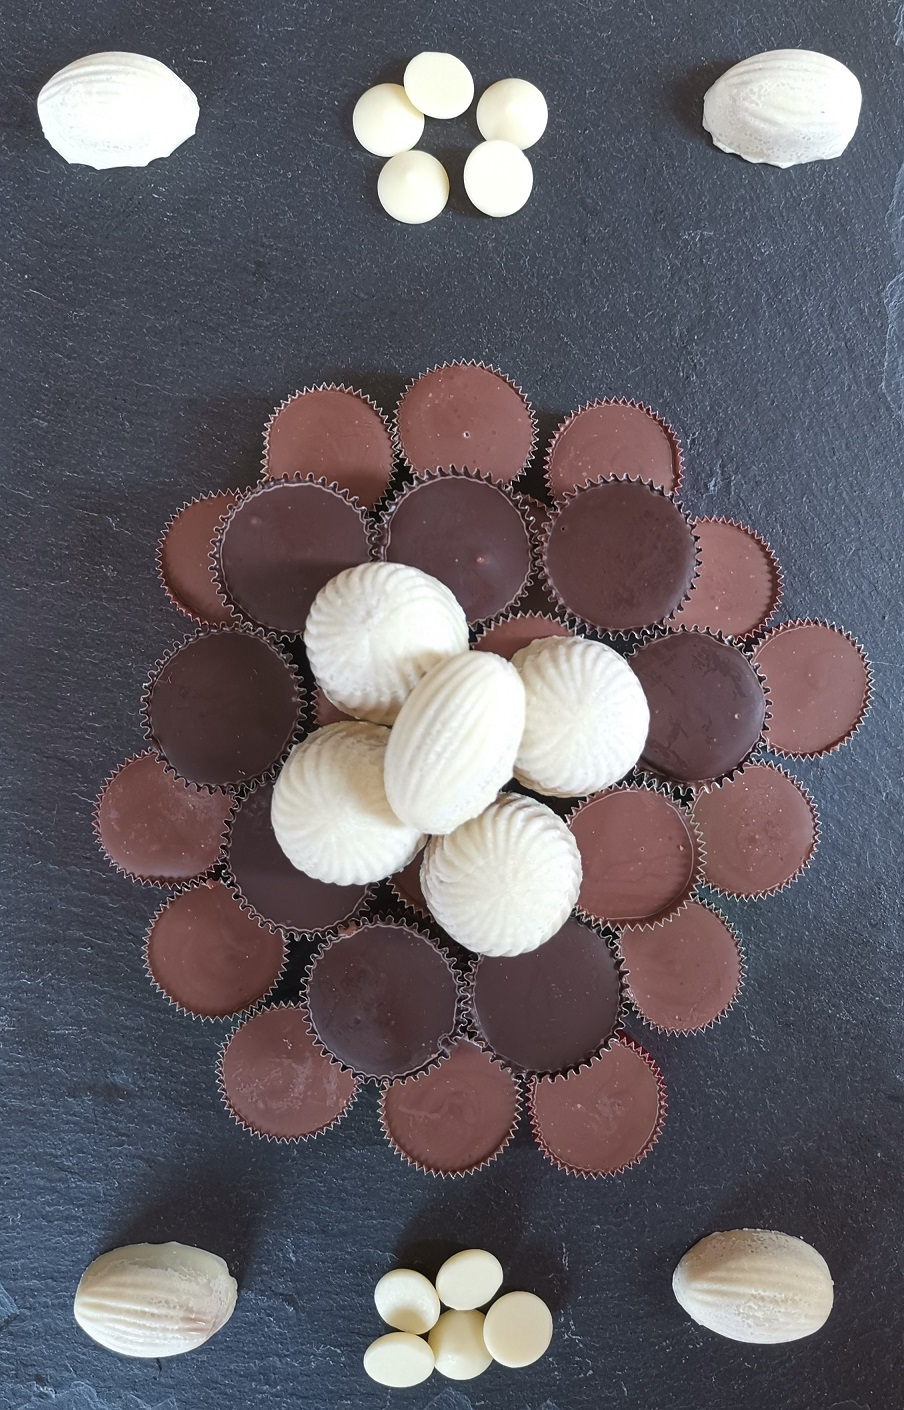 Assortiment de chocolats